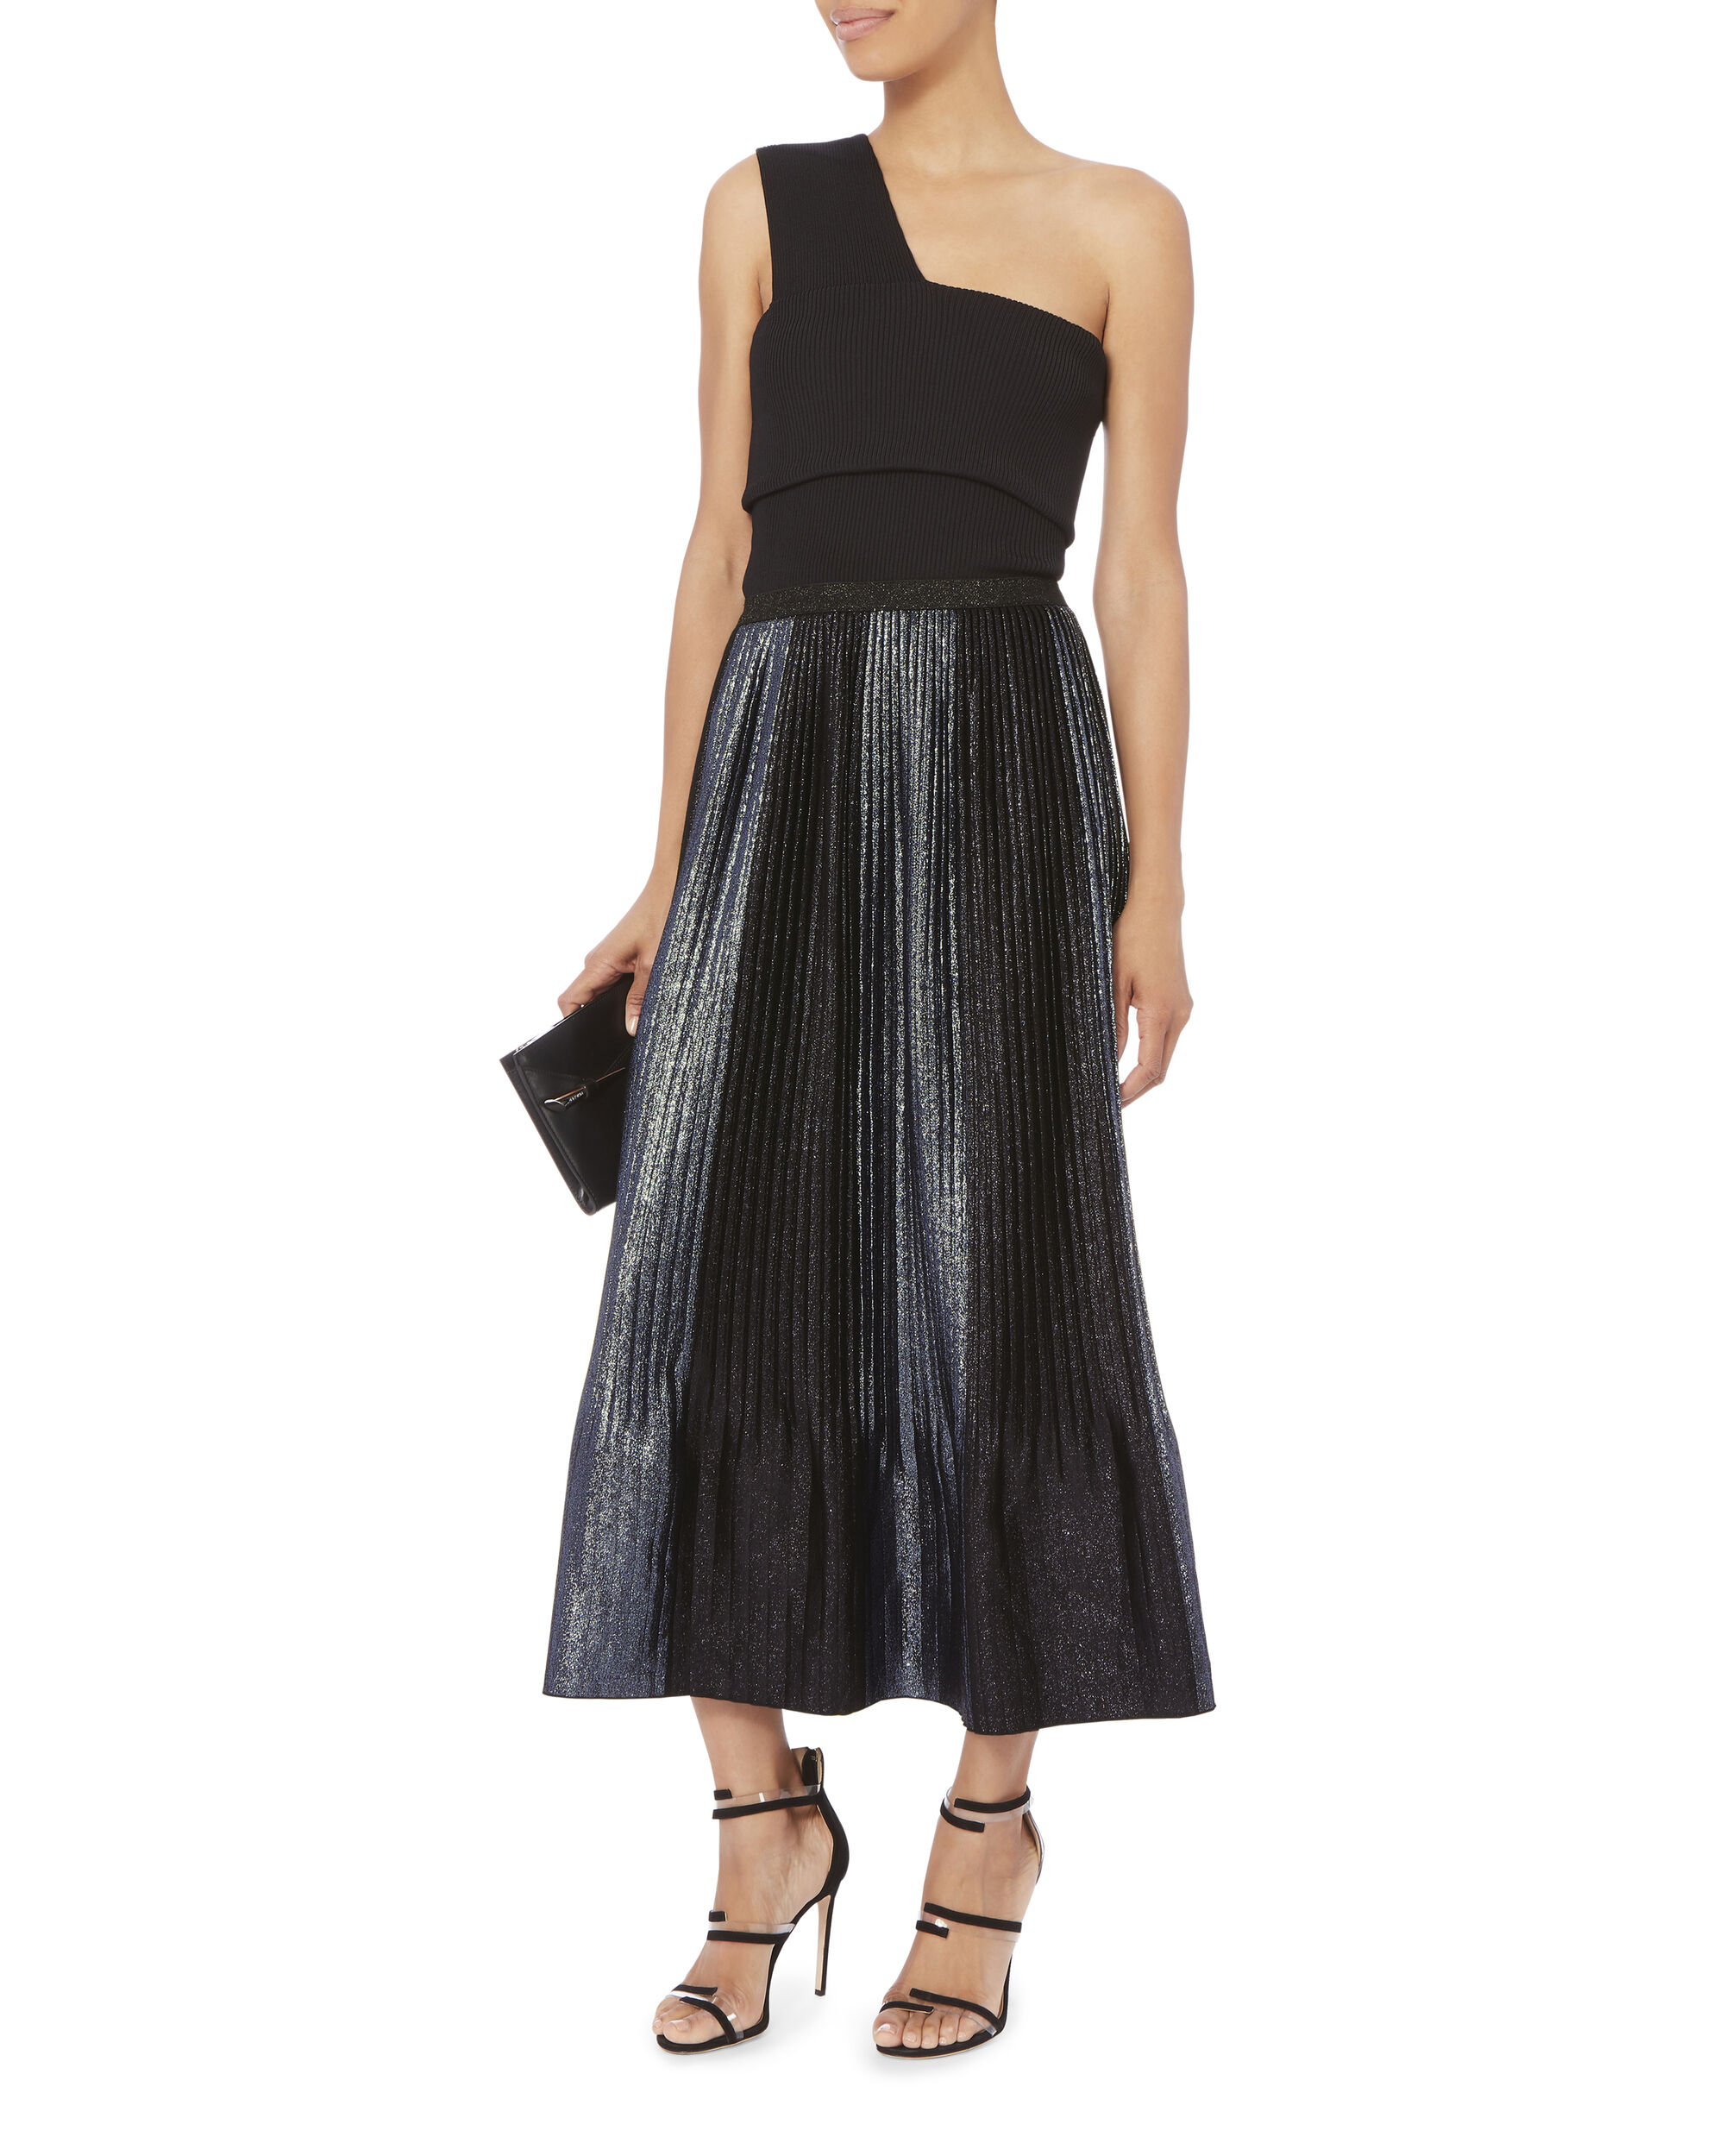 Topiary Pleated Skirt, PATTERN, hi-res